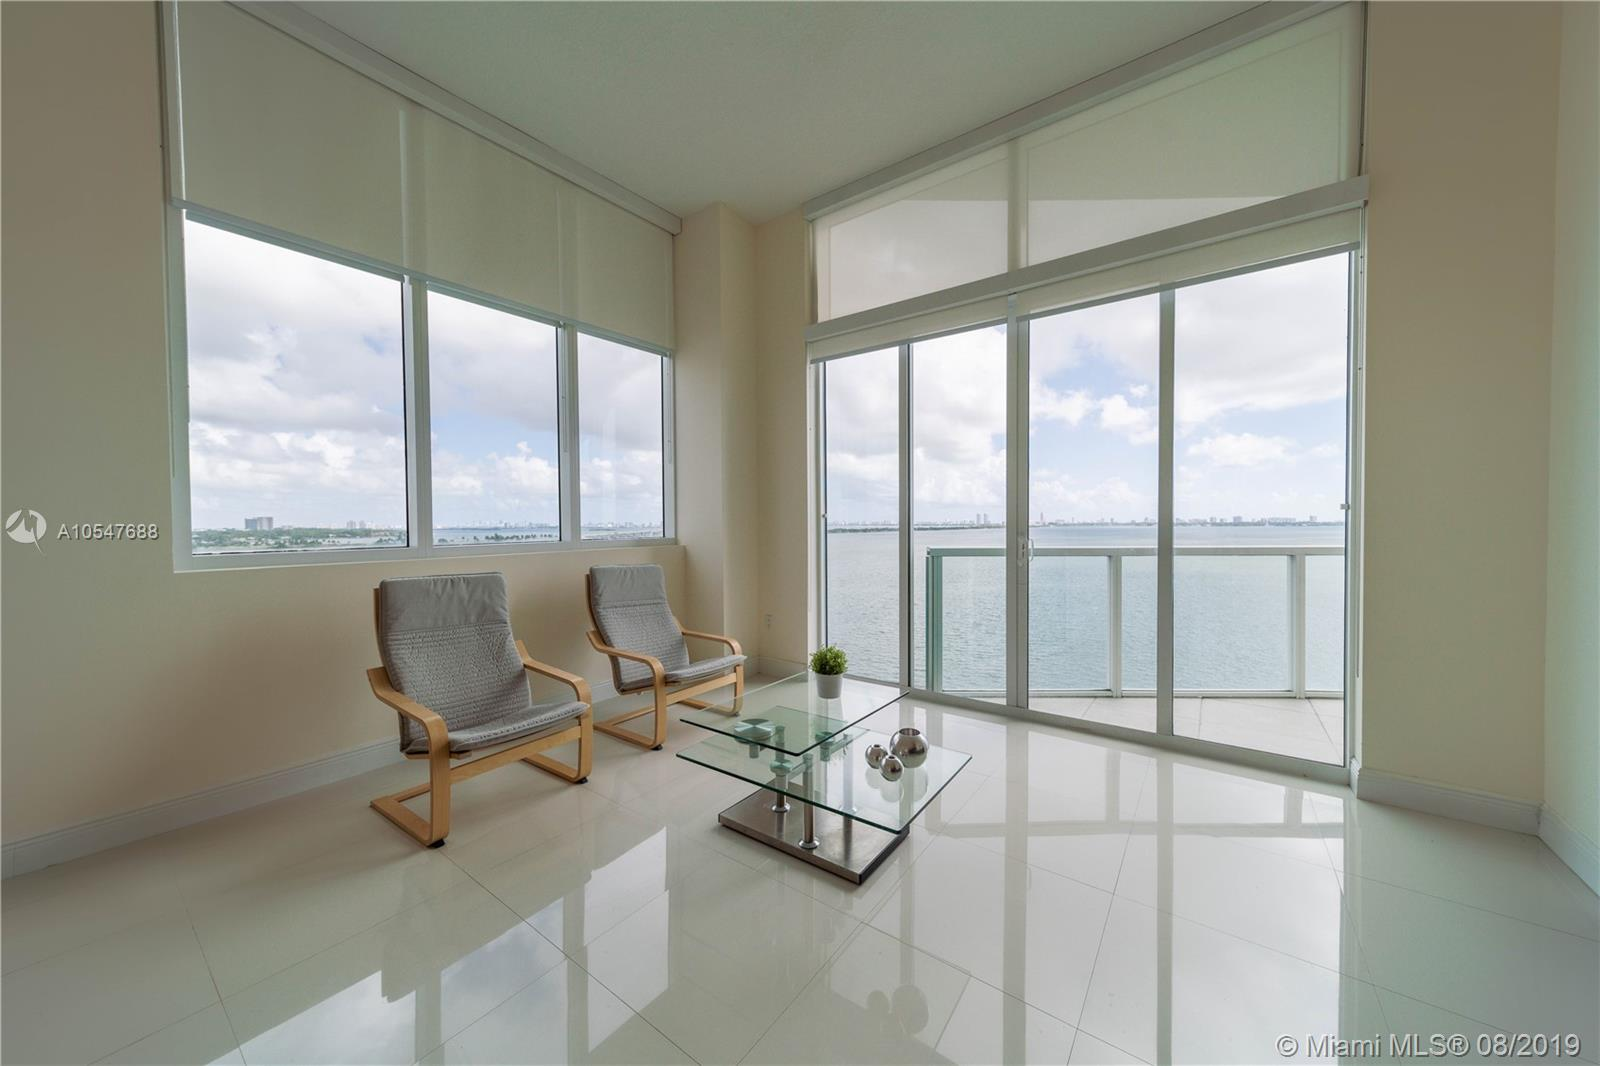 Beautiful High End Building In The Water. Granit Counter Tops, Stainless Steel Appliances Great Location As Miami Entertainment Uptown, Walking Distance Restaurants,  Entertainment And Shops. Beautiful Corner Unit Spacious 2Beds/ 2.5Baths.1368 Sqft. Furnished Unit With Spectacular Bay And City Views. High Ceilings 12.1 Feets.<Br /> Great Amenities: Pool In Front Of The Bay,  Sauna, Steam Room, Gym, Yoga Room, Billiards Room, And More Amenities.